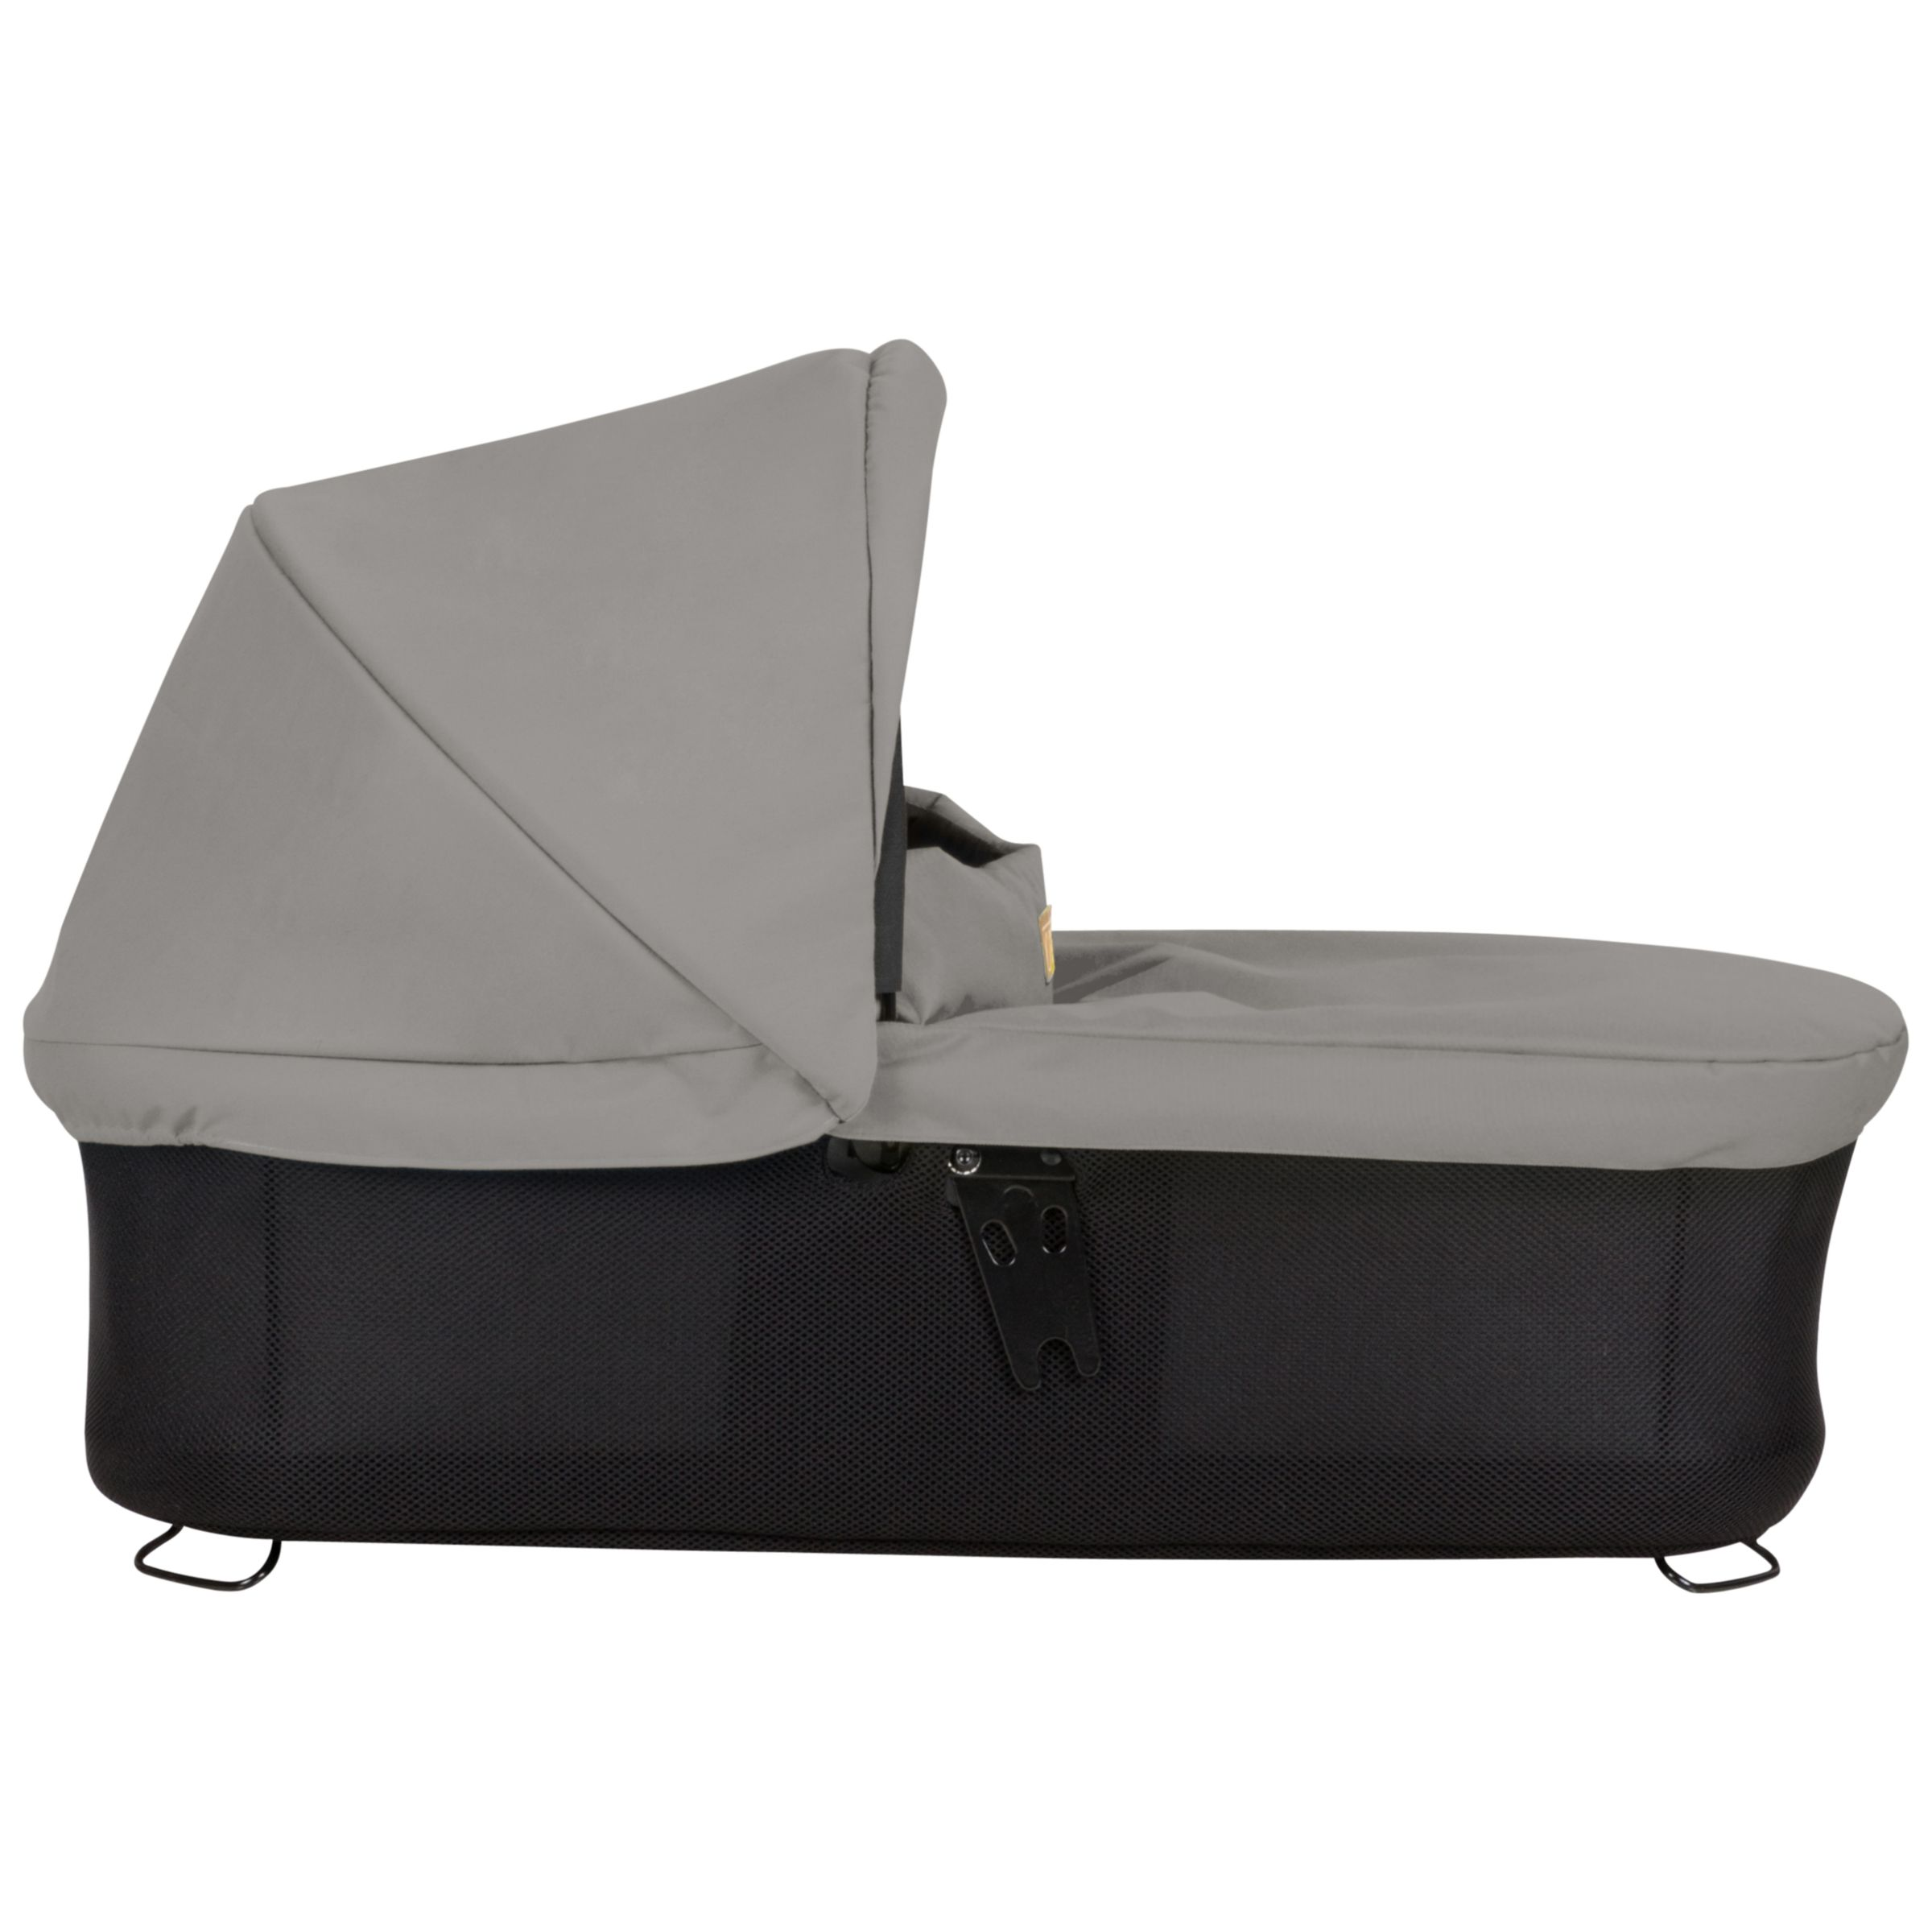 Mountain Buggy Mountain Buggy Urban Jungle Duet Carrycot Plus, Silver